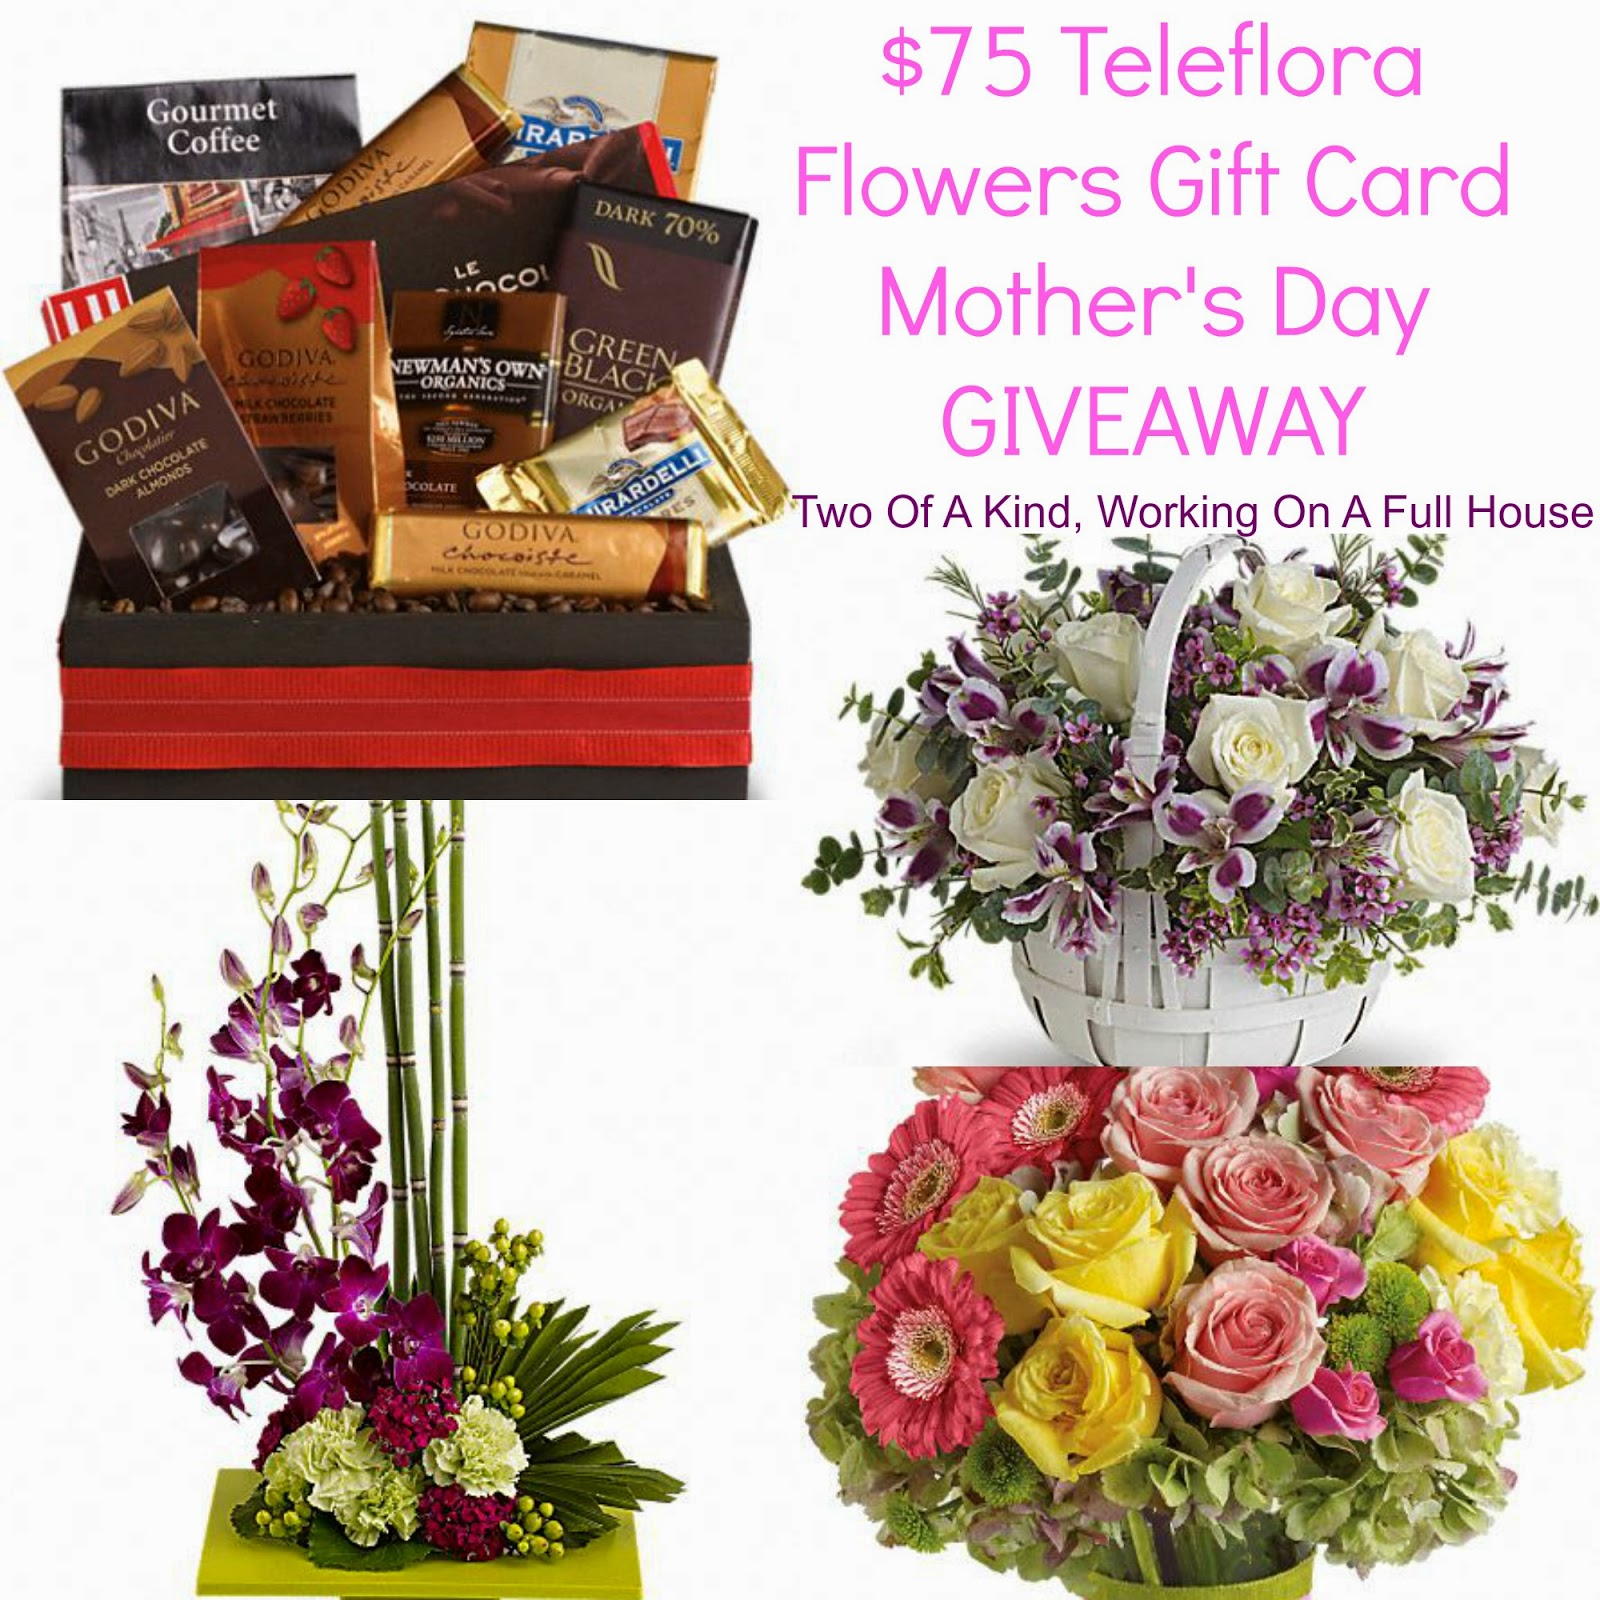 Teleflora Mother s Day Flowers Coupon Code $75 Gift Card Giveaway